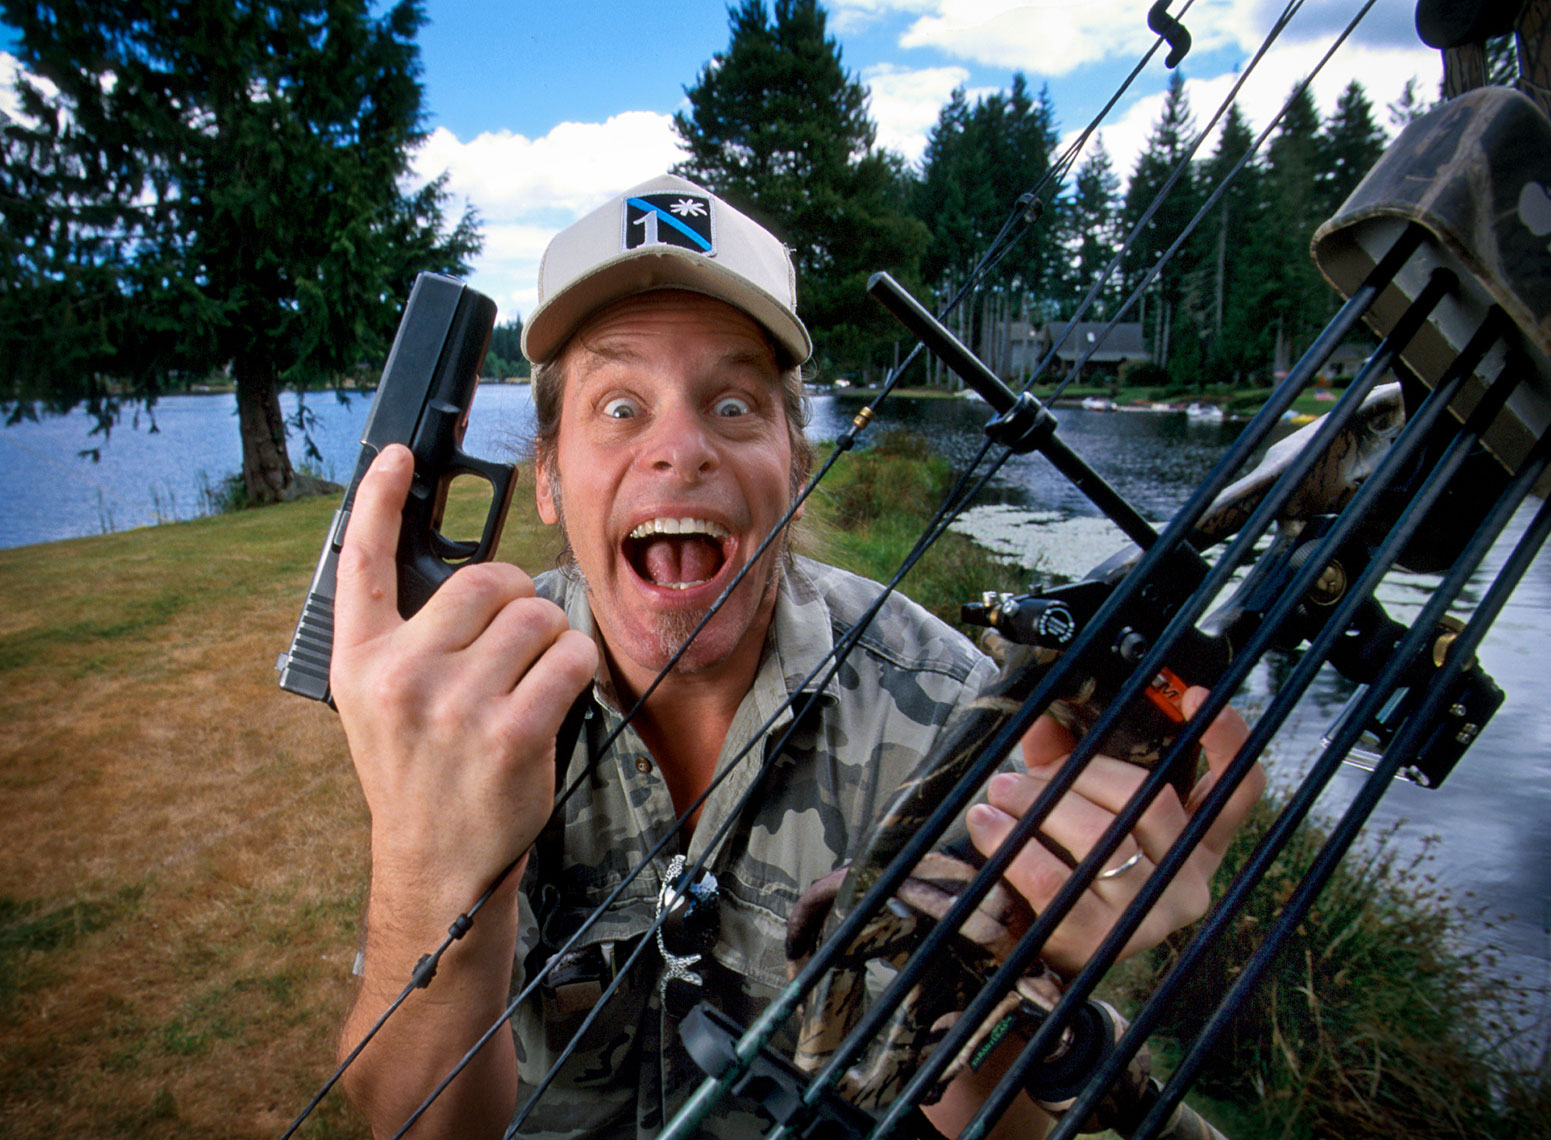 027-051-Ted-Nugent